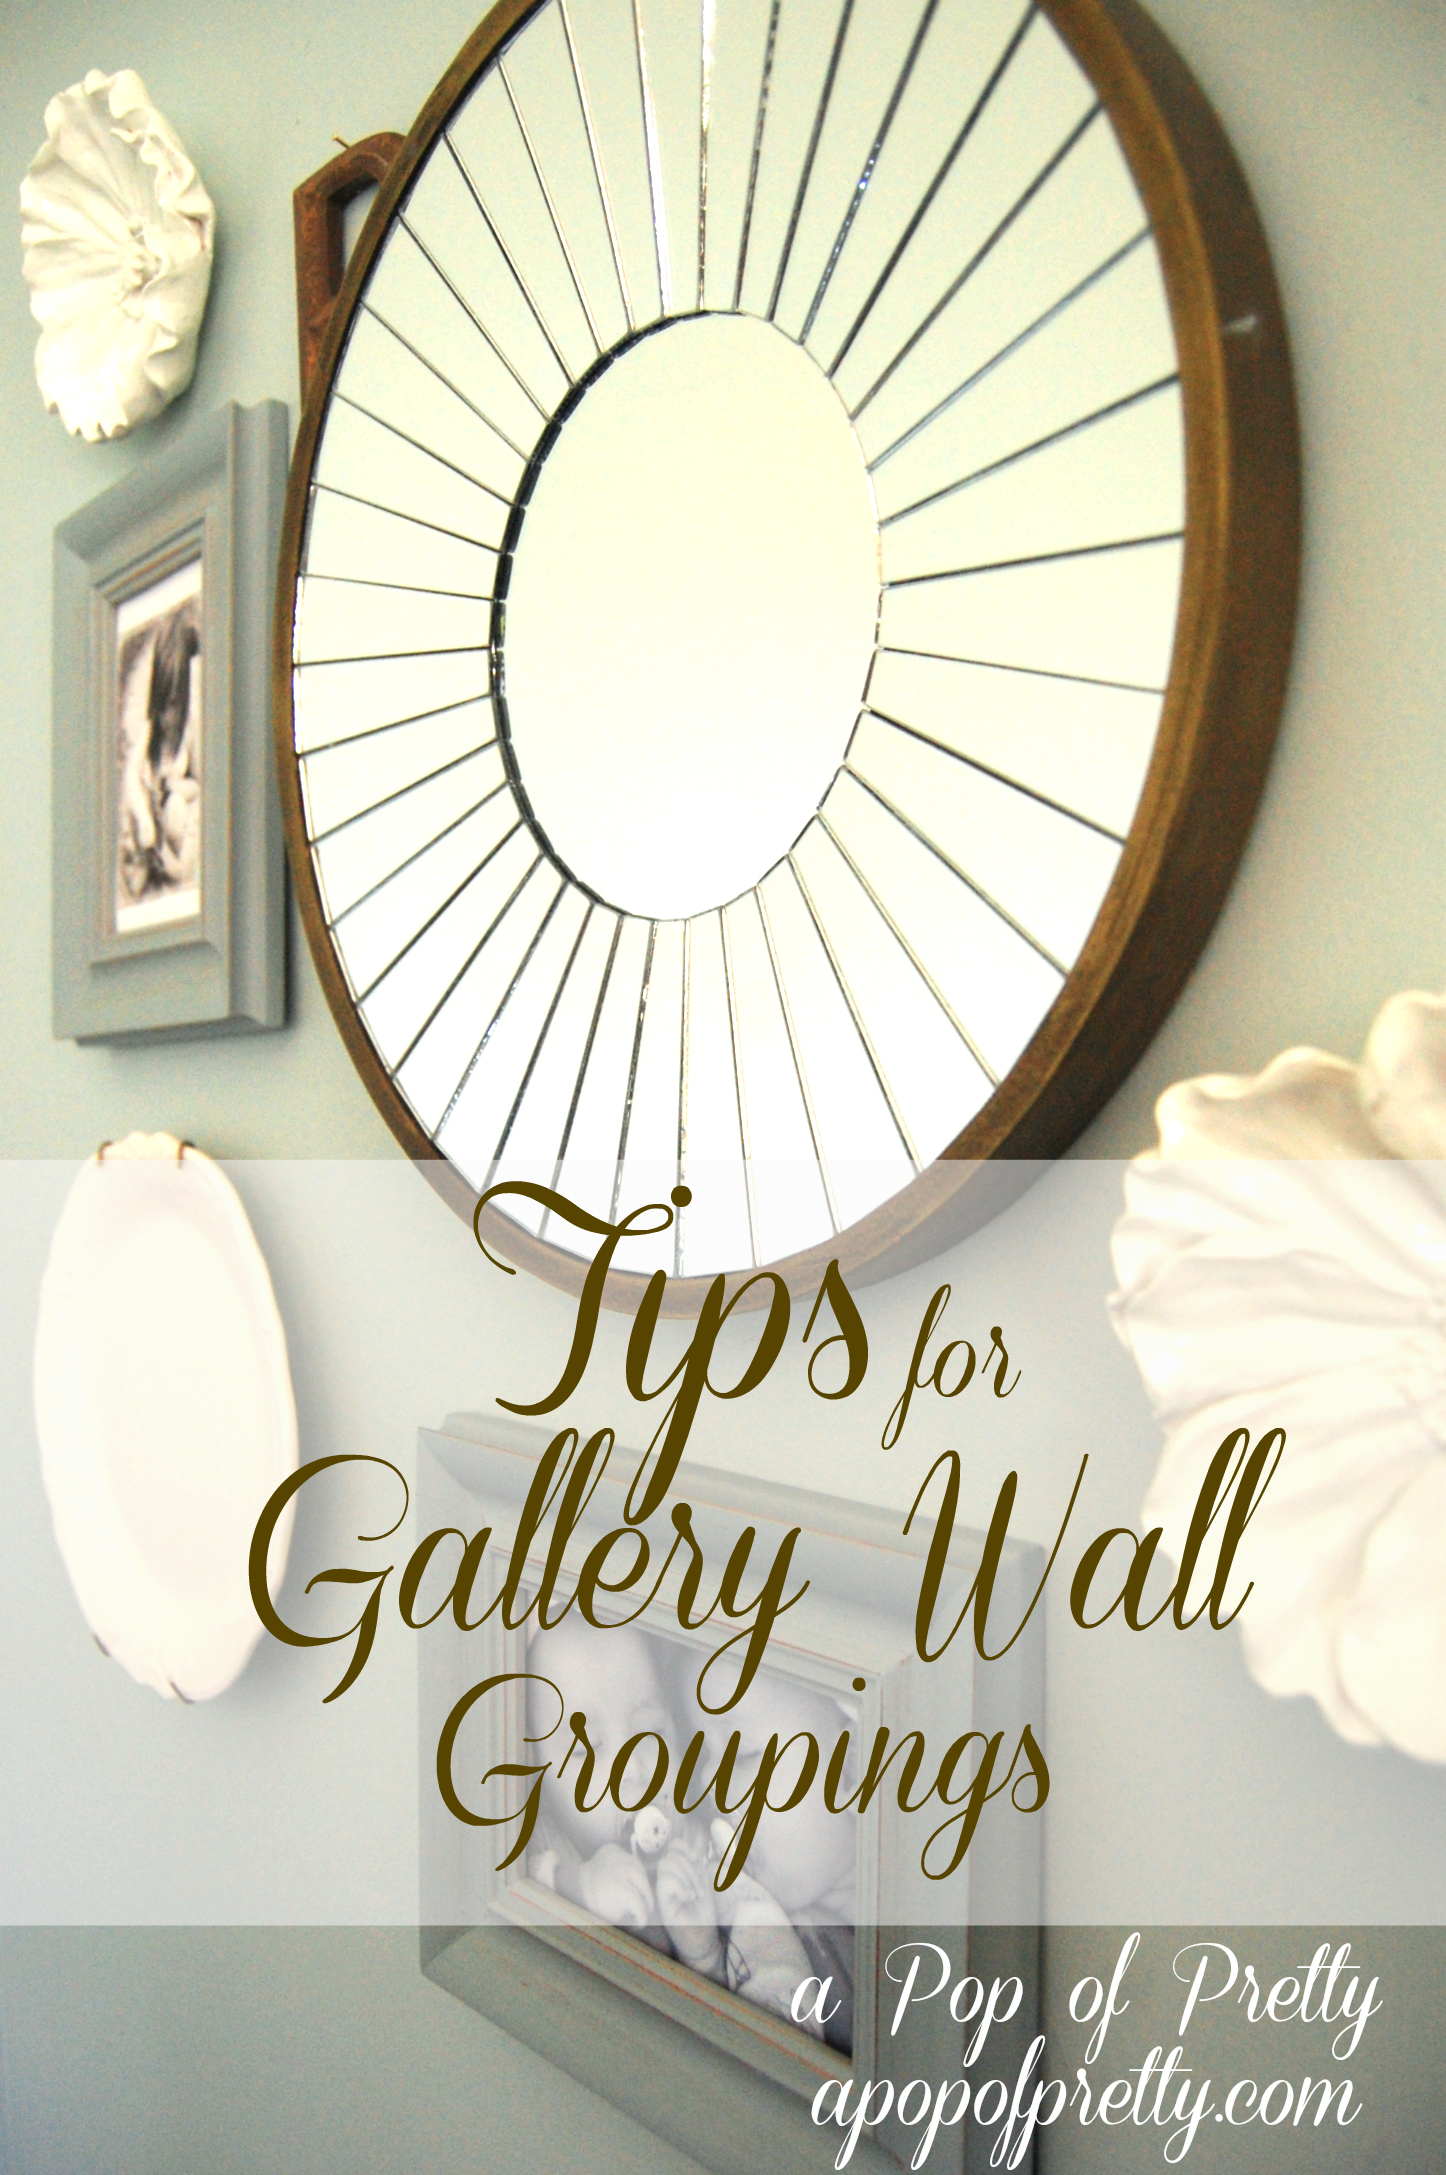 diy wall art idea gallery wall groupings a pop of